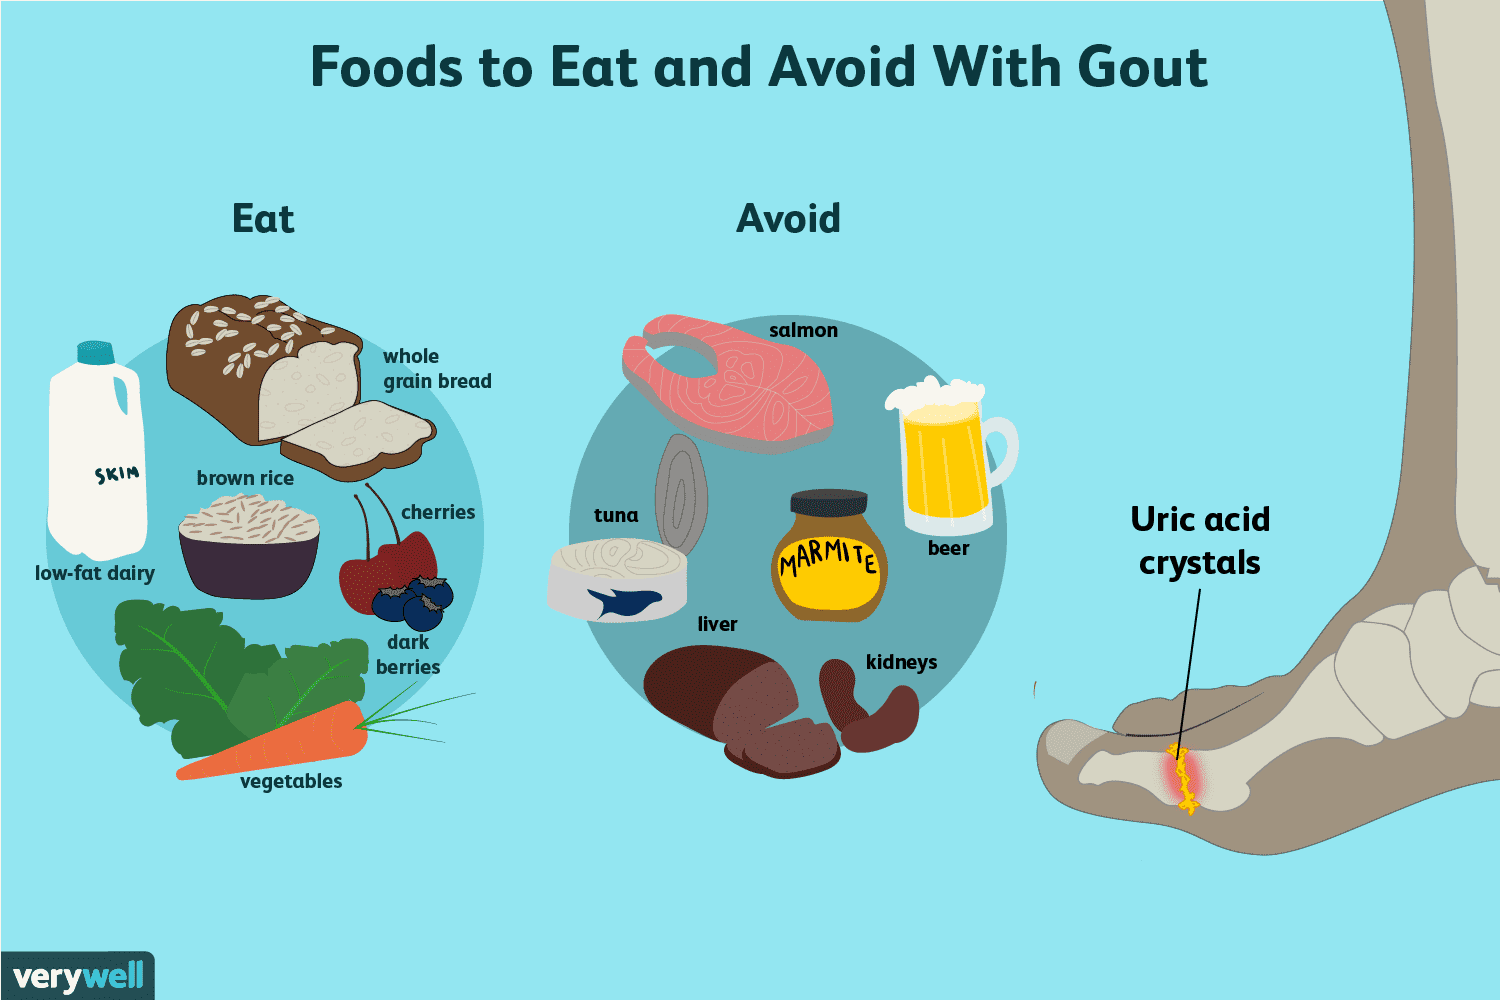 Foods to Avoid With Gout: Seafood, Yeast, Red Meat, and More